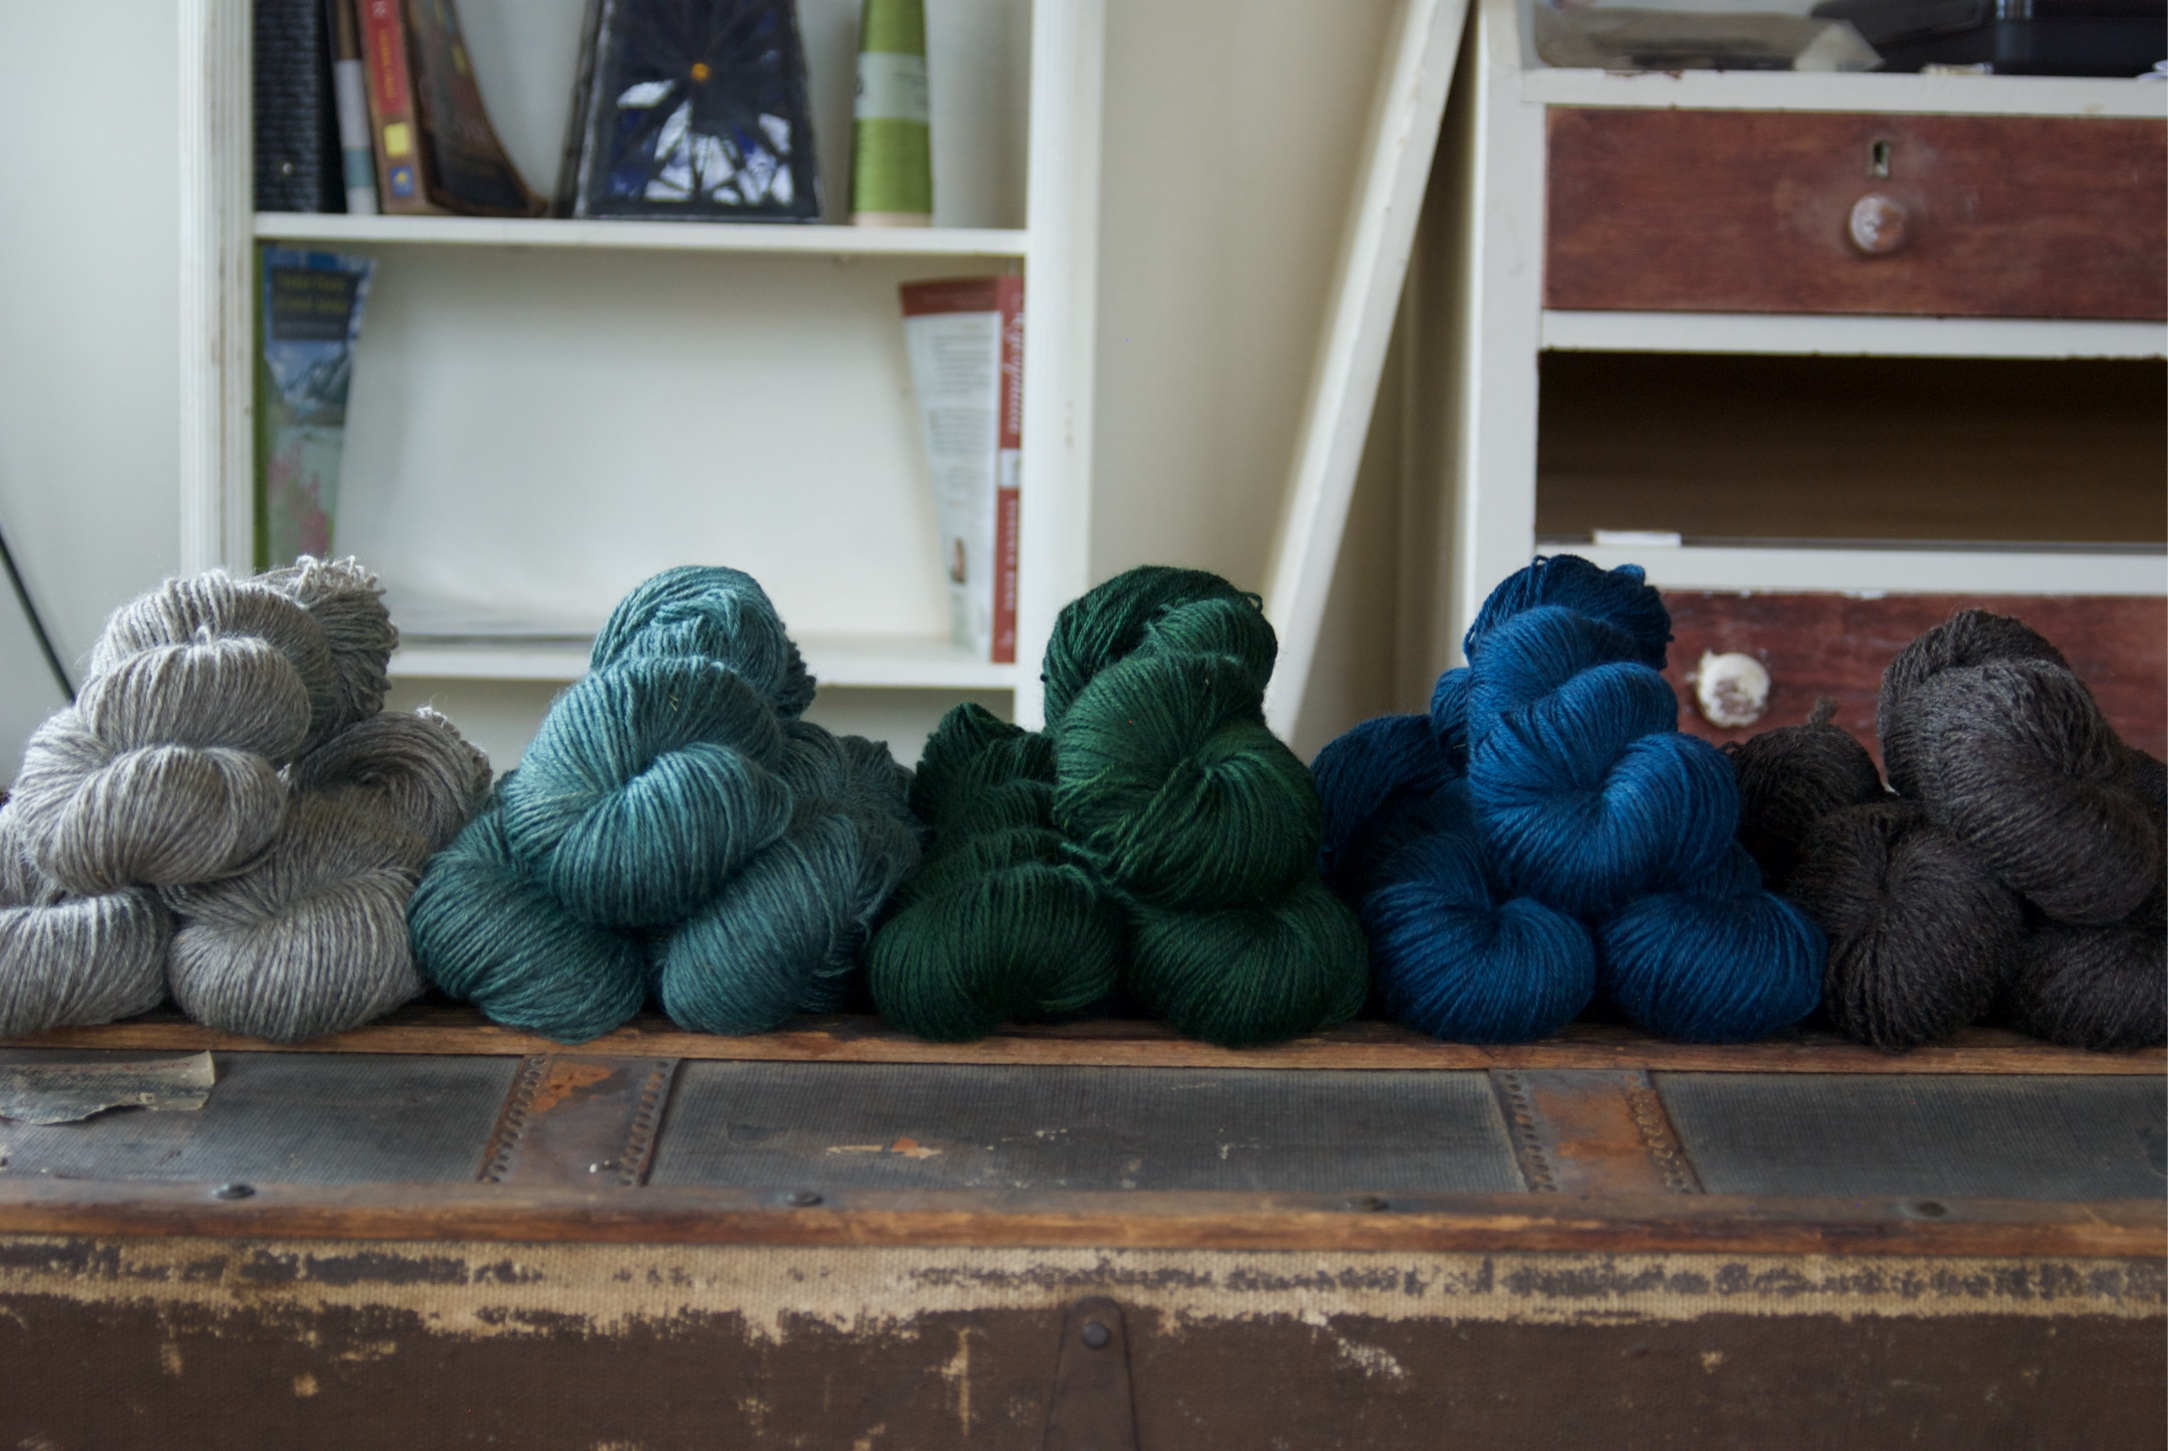 From left to right; Light Gray (Undyed), North Atlantic (custom blue/green), Nordic Tug Green (custom green) Medium Blue, and Dark Gray/Brown (undyed).